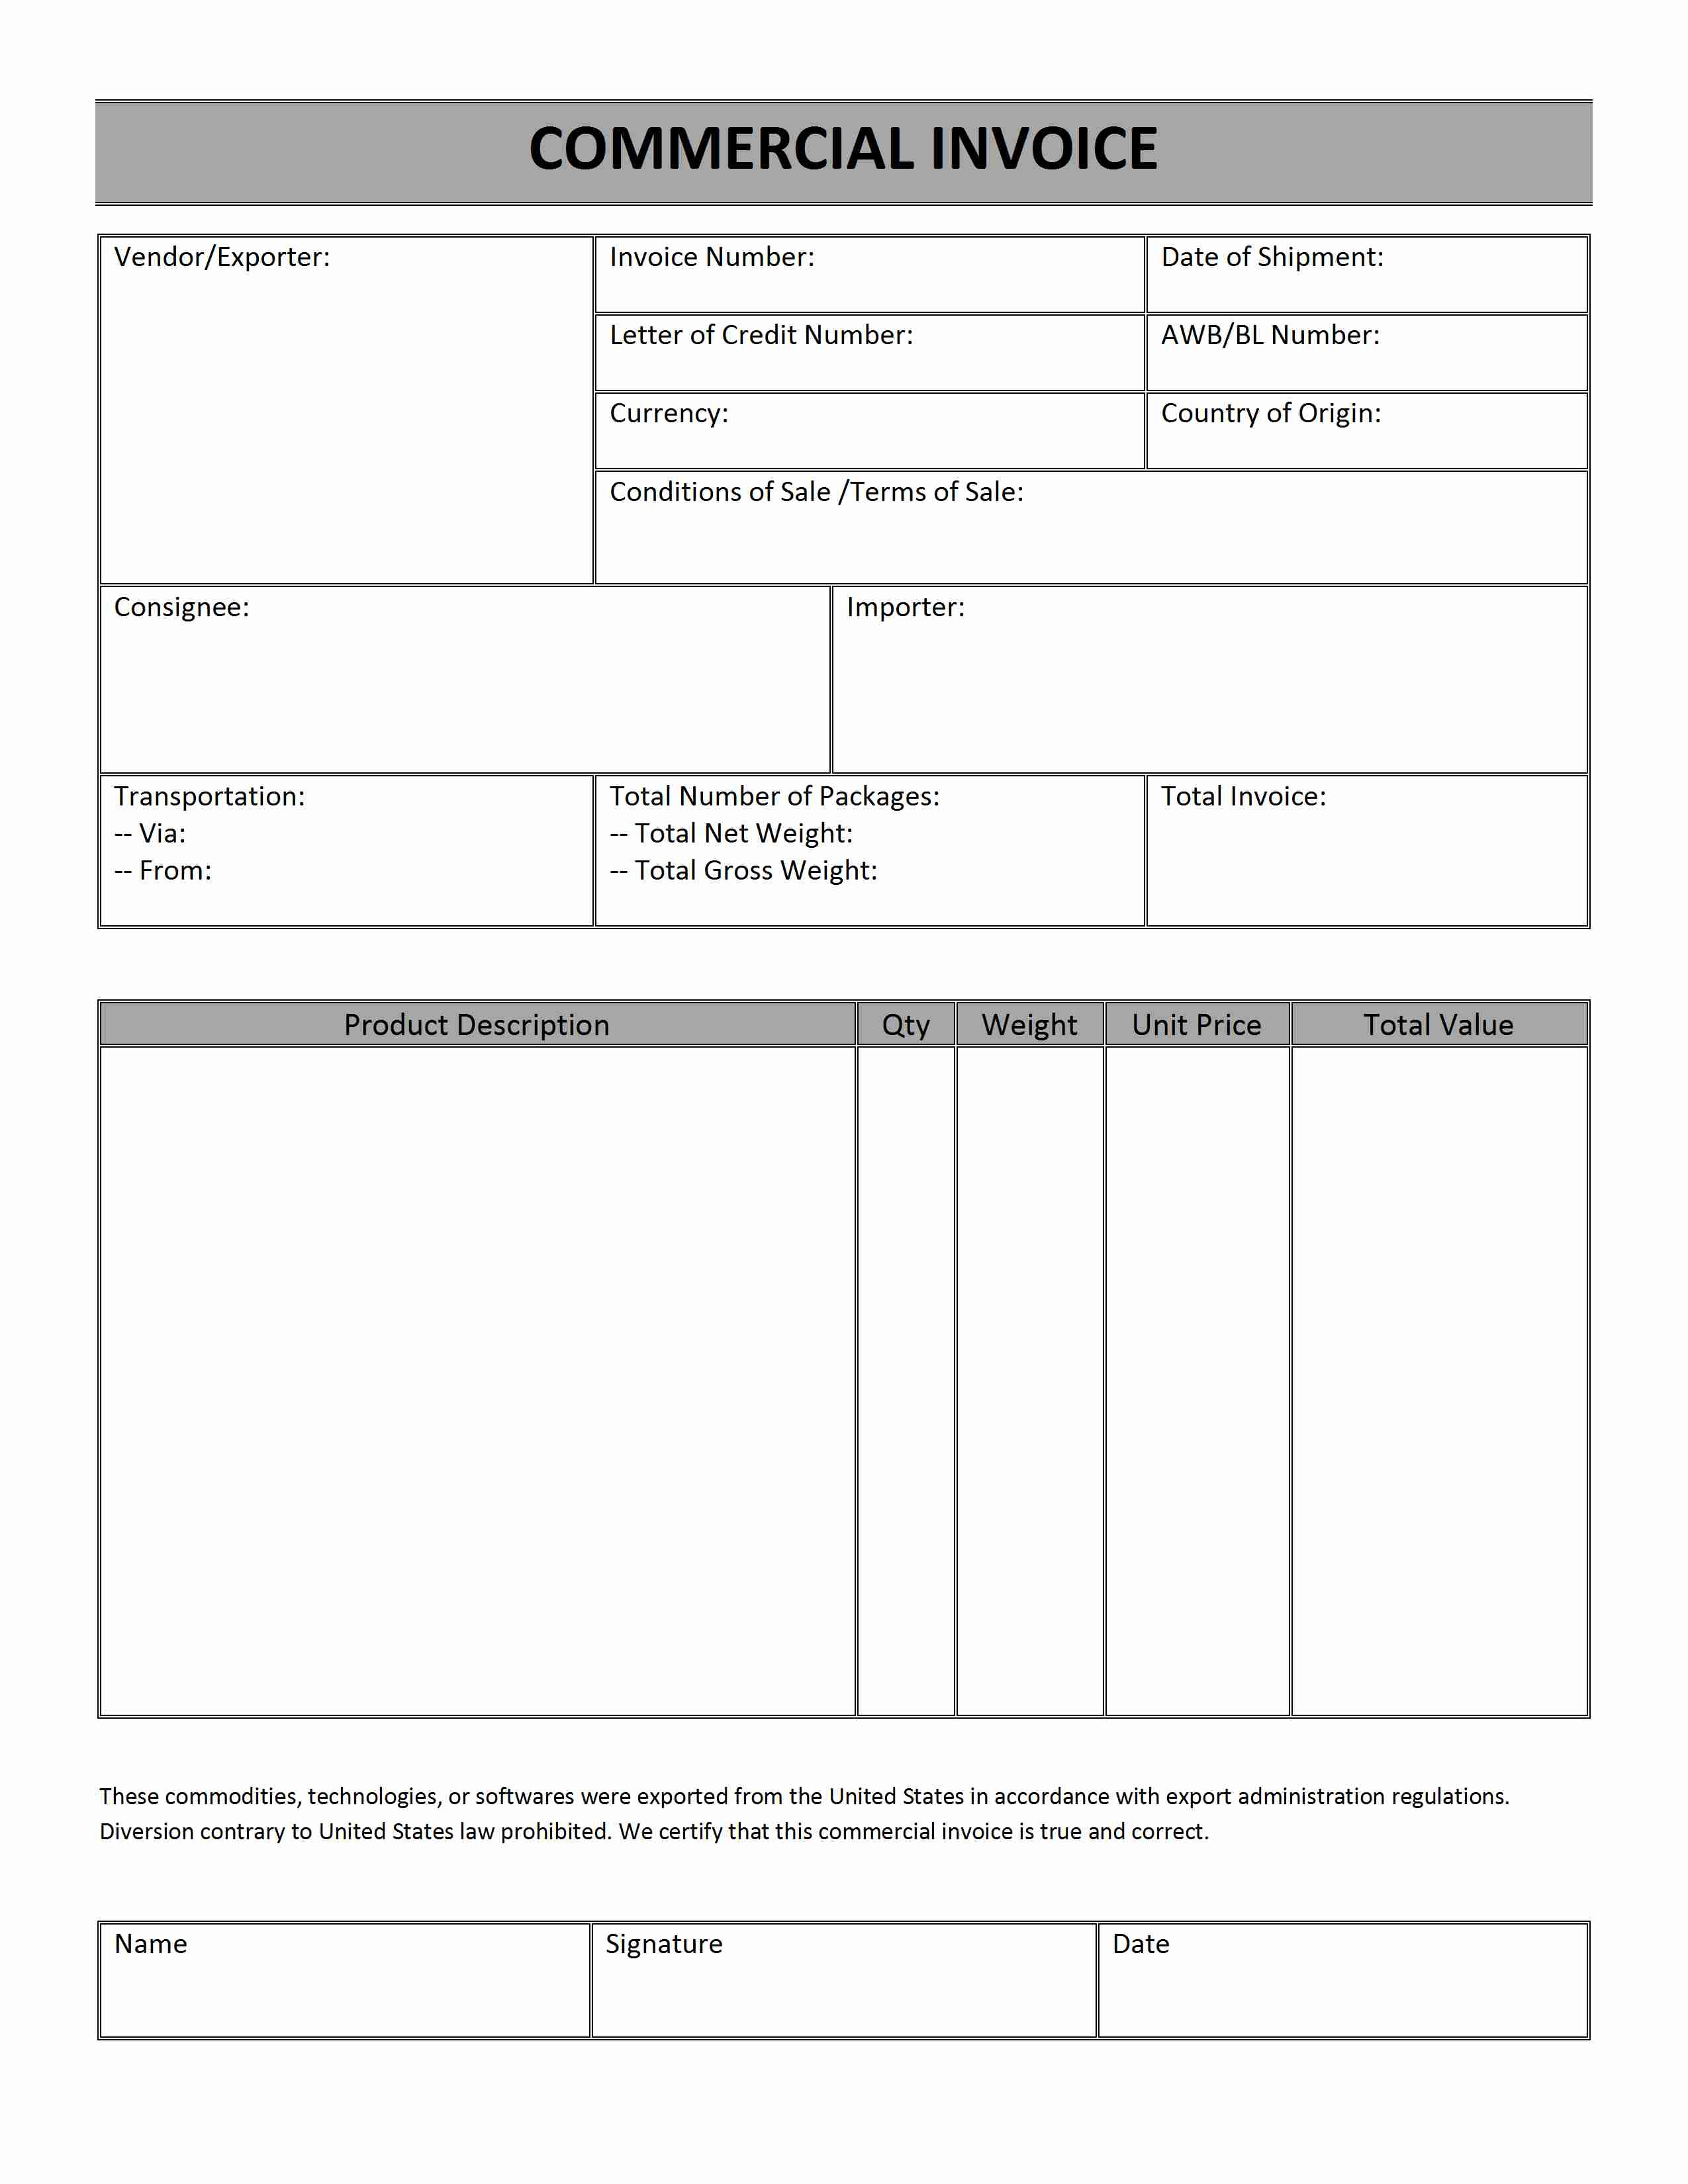 Breakupus  Nice Printable Sales Invoice Simple Invoice Form Free Invoice  With Hot Printable Receipt Free  Free Printable Raffle Tickets  Receipt   Printable With Charming Cash Book Receipts And Payments Also Rrsp Tax Receipt In Addition Carbon Receipt And Receipt Example Template As Well As Sold As Seen Receipt Additionally Confirm Receipt Email From Happytomco With Breakupus  Hot Printable Sales Invoice Simple Invoice Form Free Invoice  With Charming Printable Receipt Free  Free Printable Raffle Tickets  Receipt   Printable And Nice Cash Book Receipts And Payments Also Rrsp Tax Receipt In Addition Carbon Receipt From Happytomco